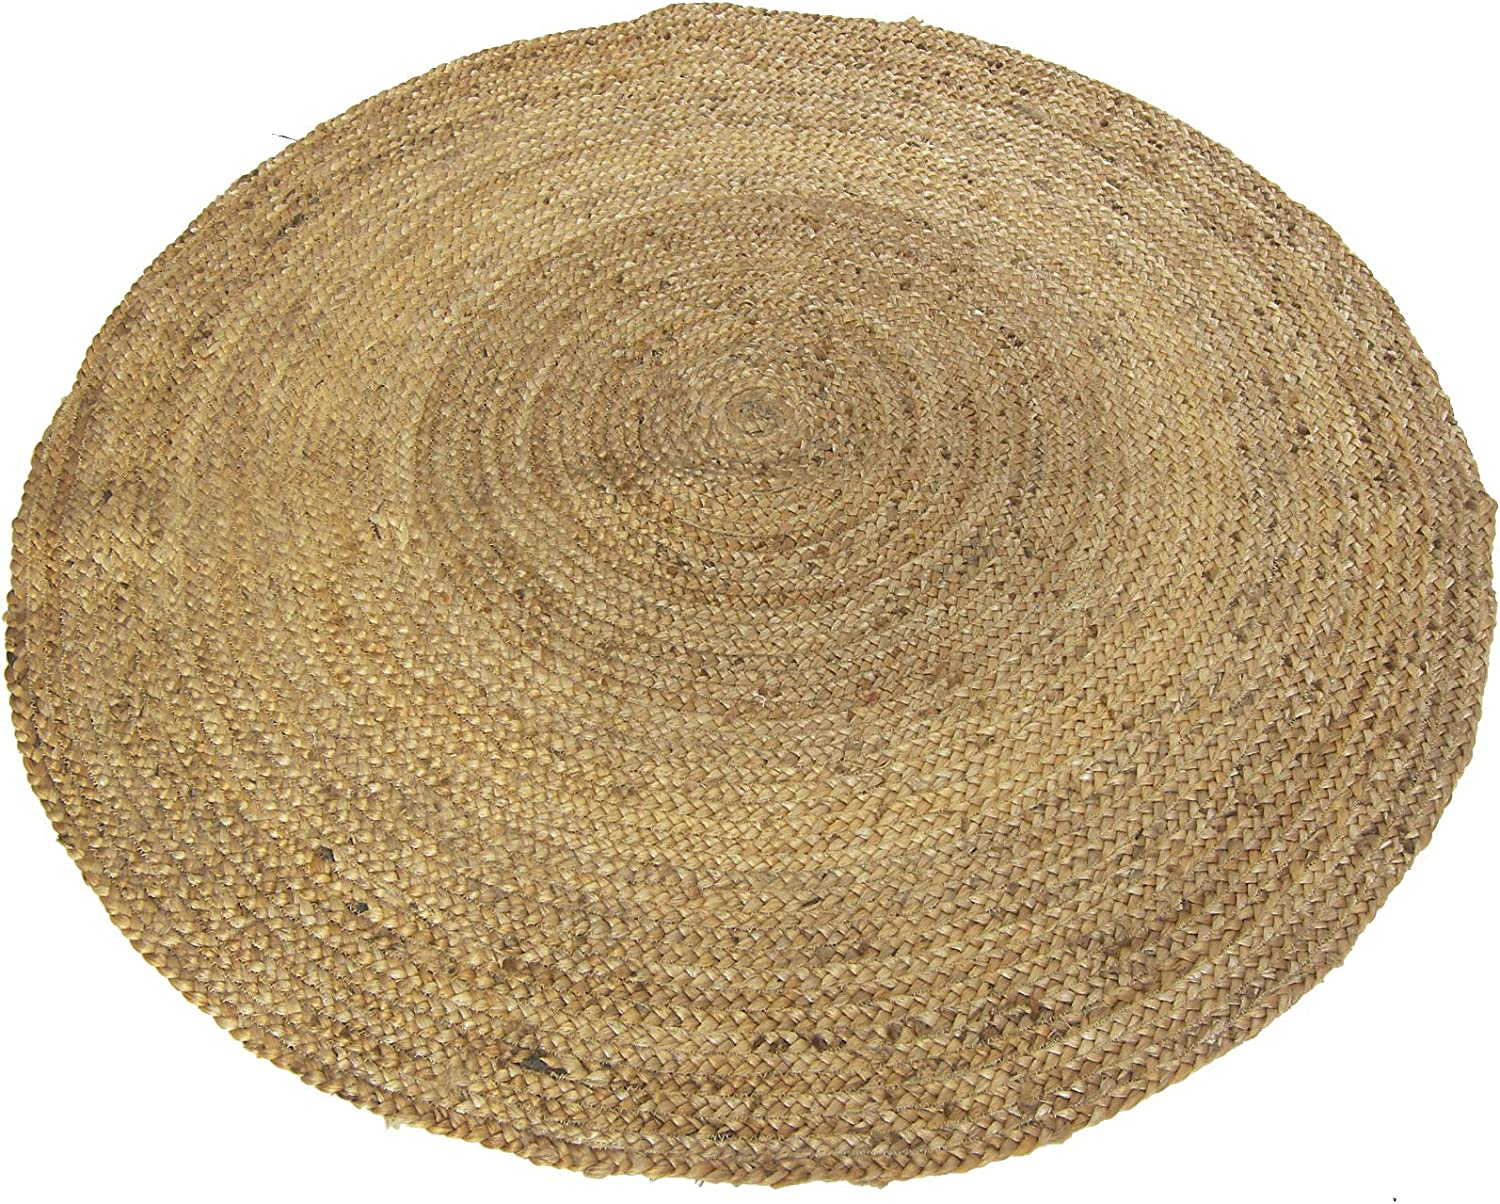 Chardin home Farmhouse Jute Braid Oval Rug, Natural, Size: 18x30 inch. -1.5x2.5 ft. (3' Rnd)